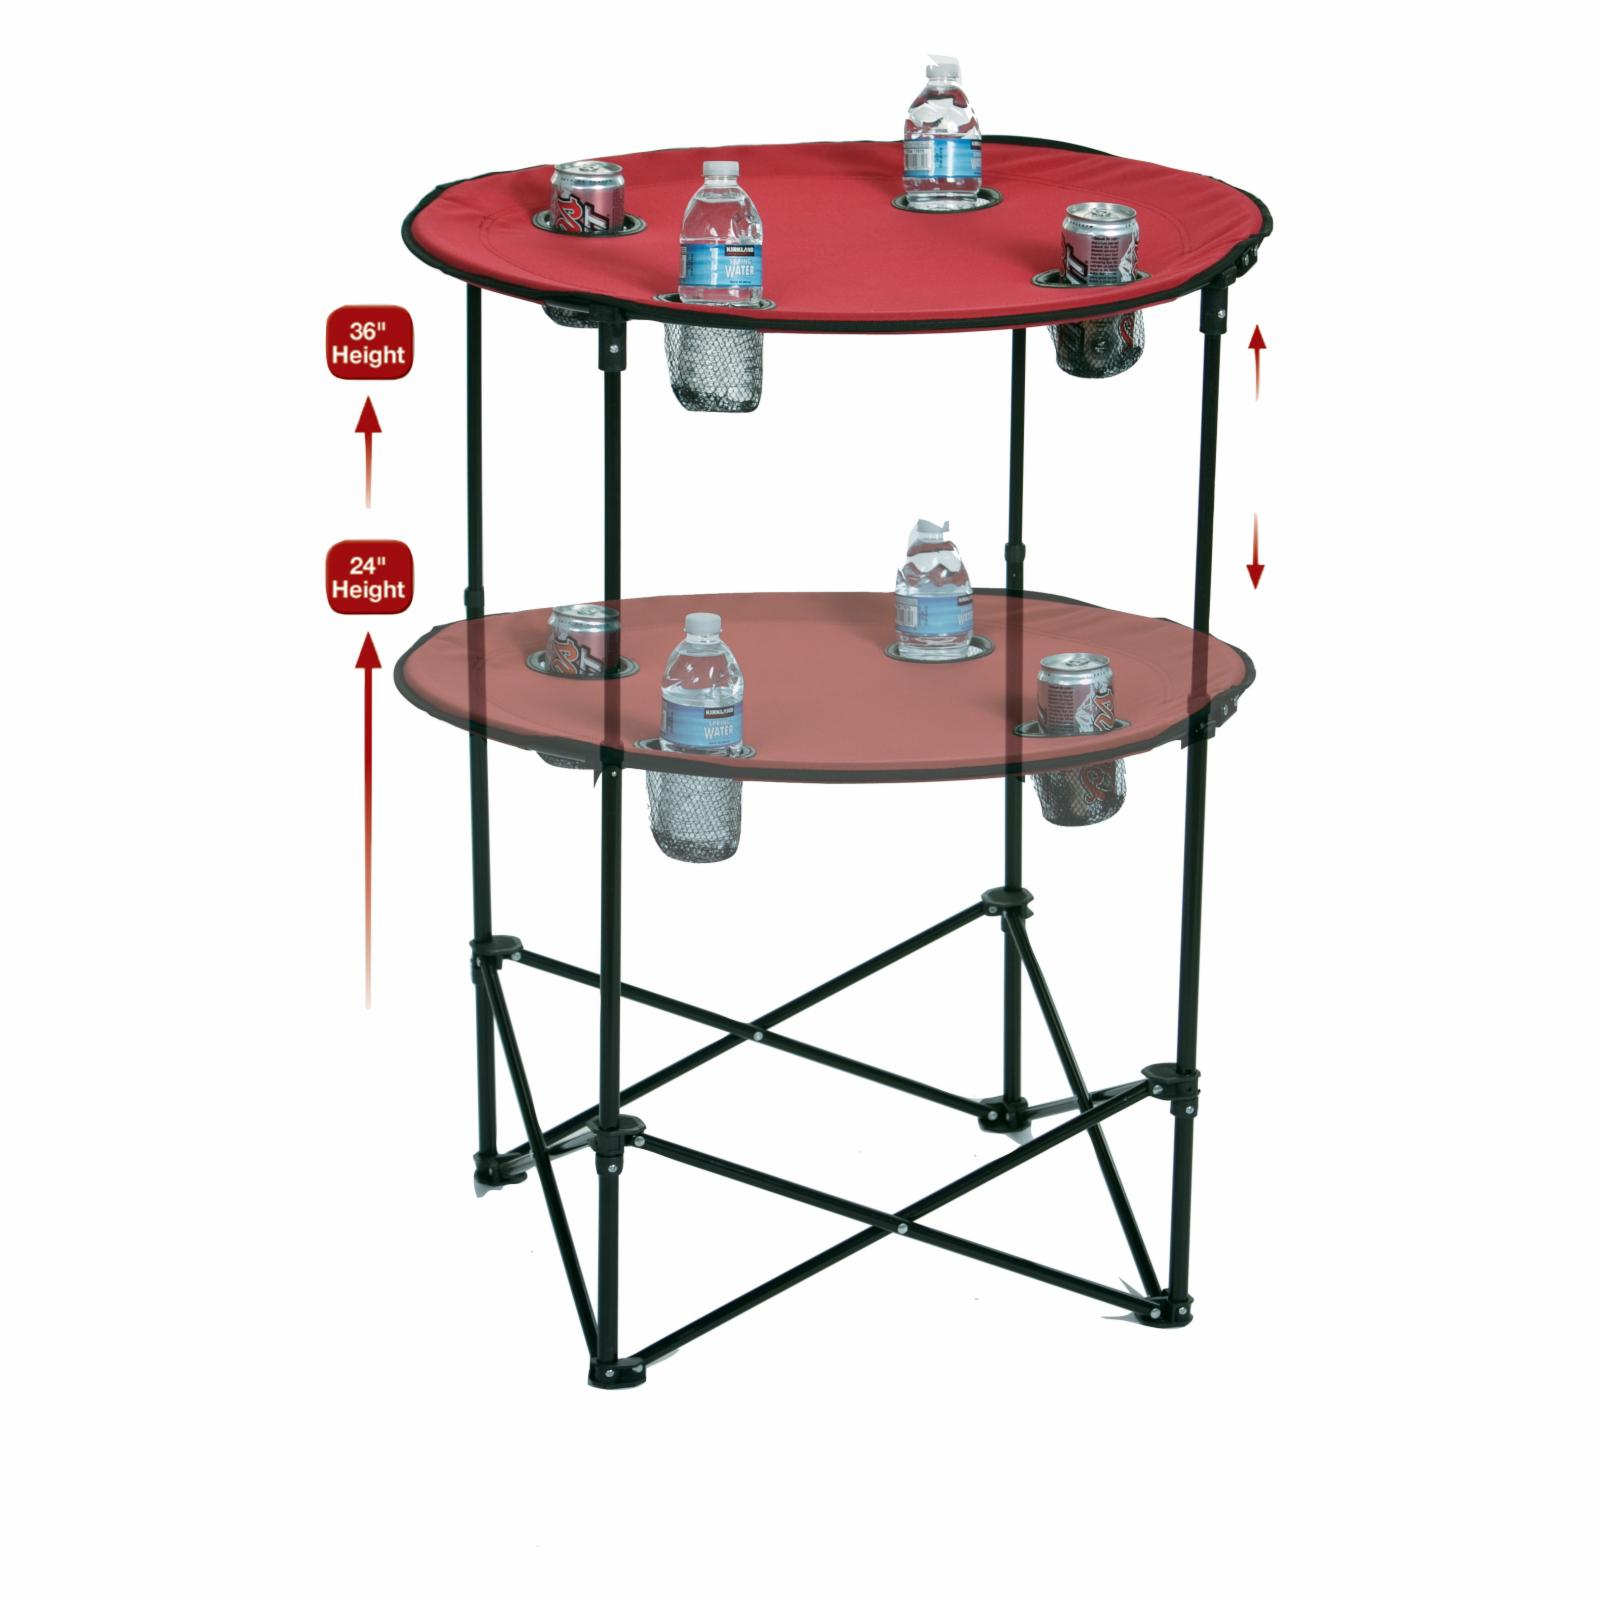 Picnic Plus Scrimmage Tailgate Table Maroon - PSM-104M